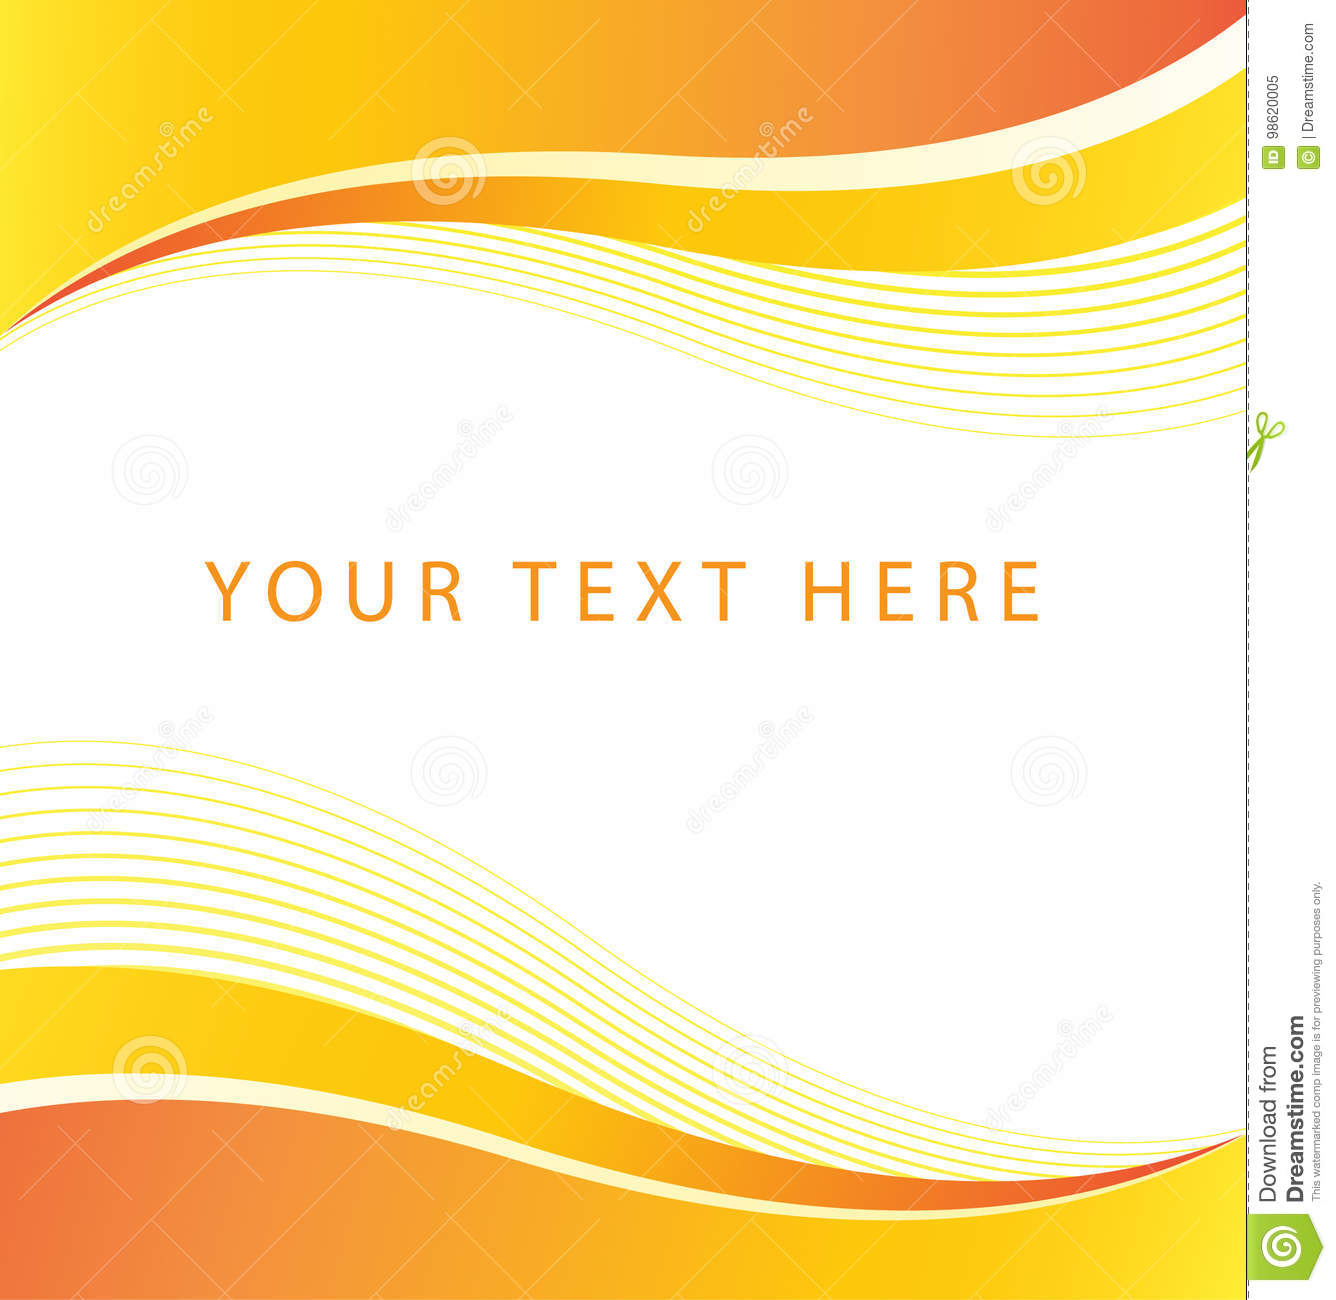 Abstract Orange Wave Border Background Stock Vector